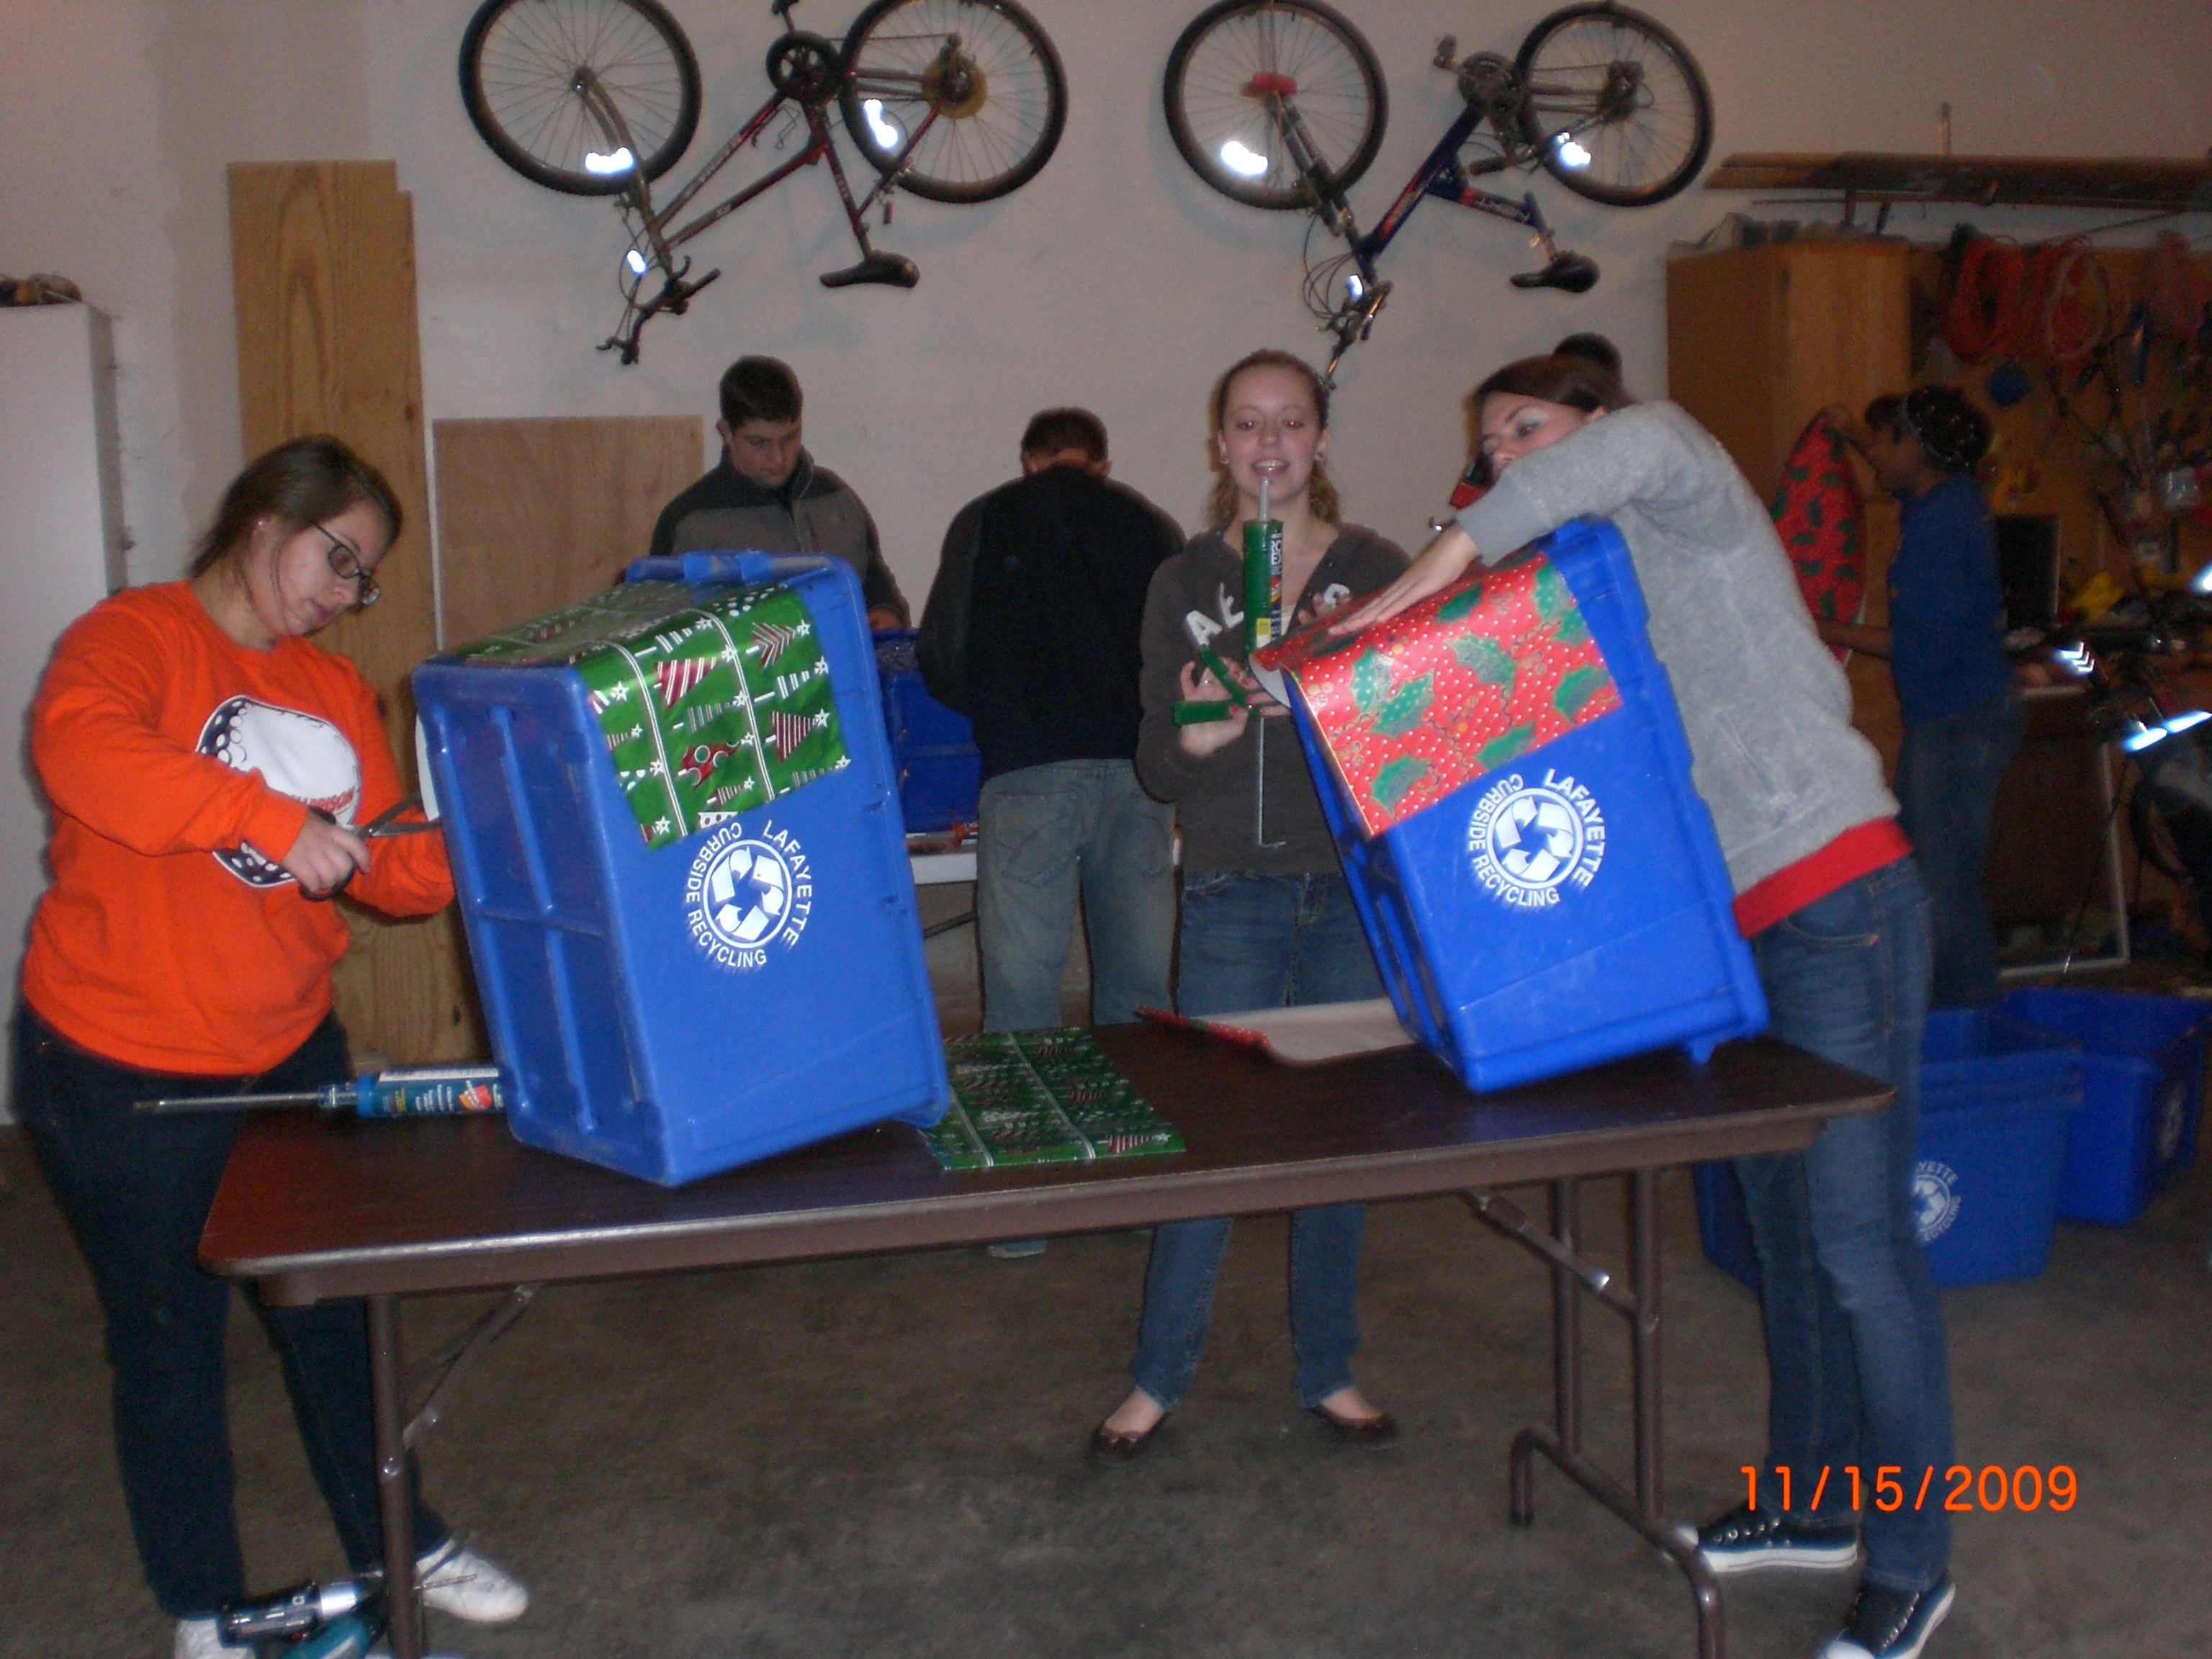 Teens decorating recyling bins for Christmas